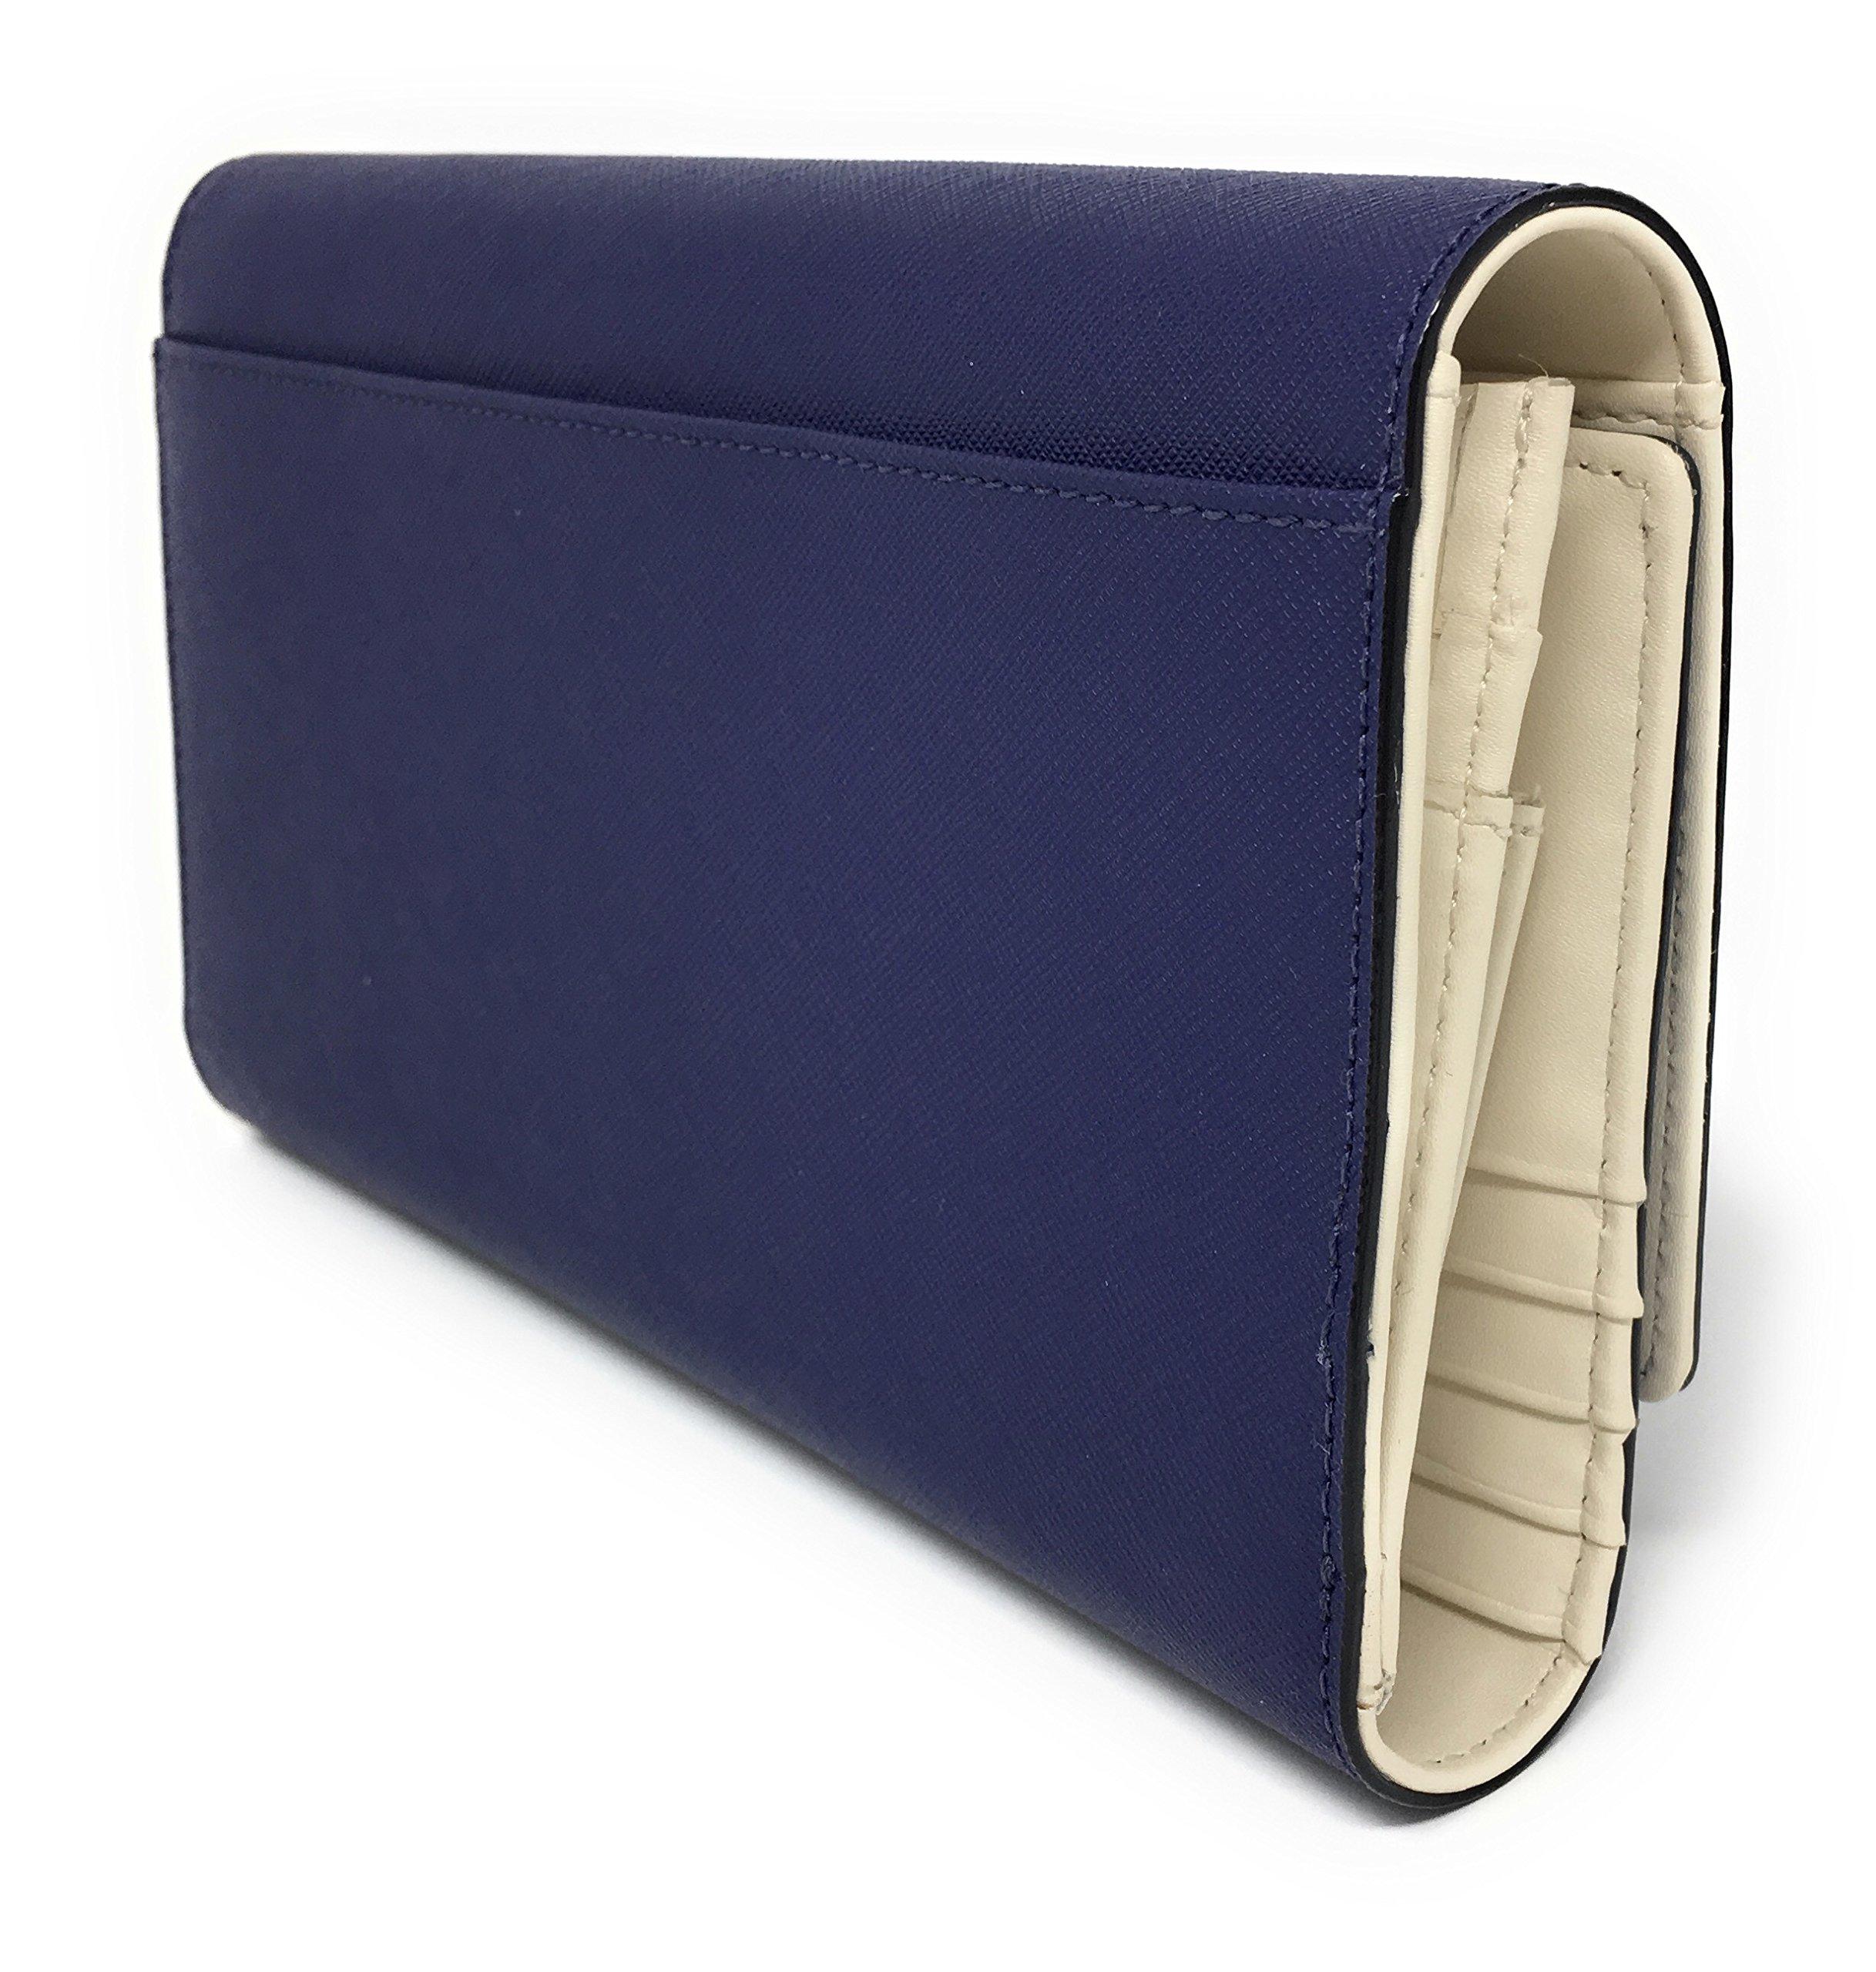 Kate Spade New York Mikas Pond Phoenix Trifold Leather Wallet (Sapphire) by Kate Spade New York (Image #3)